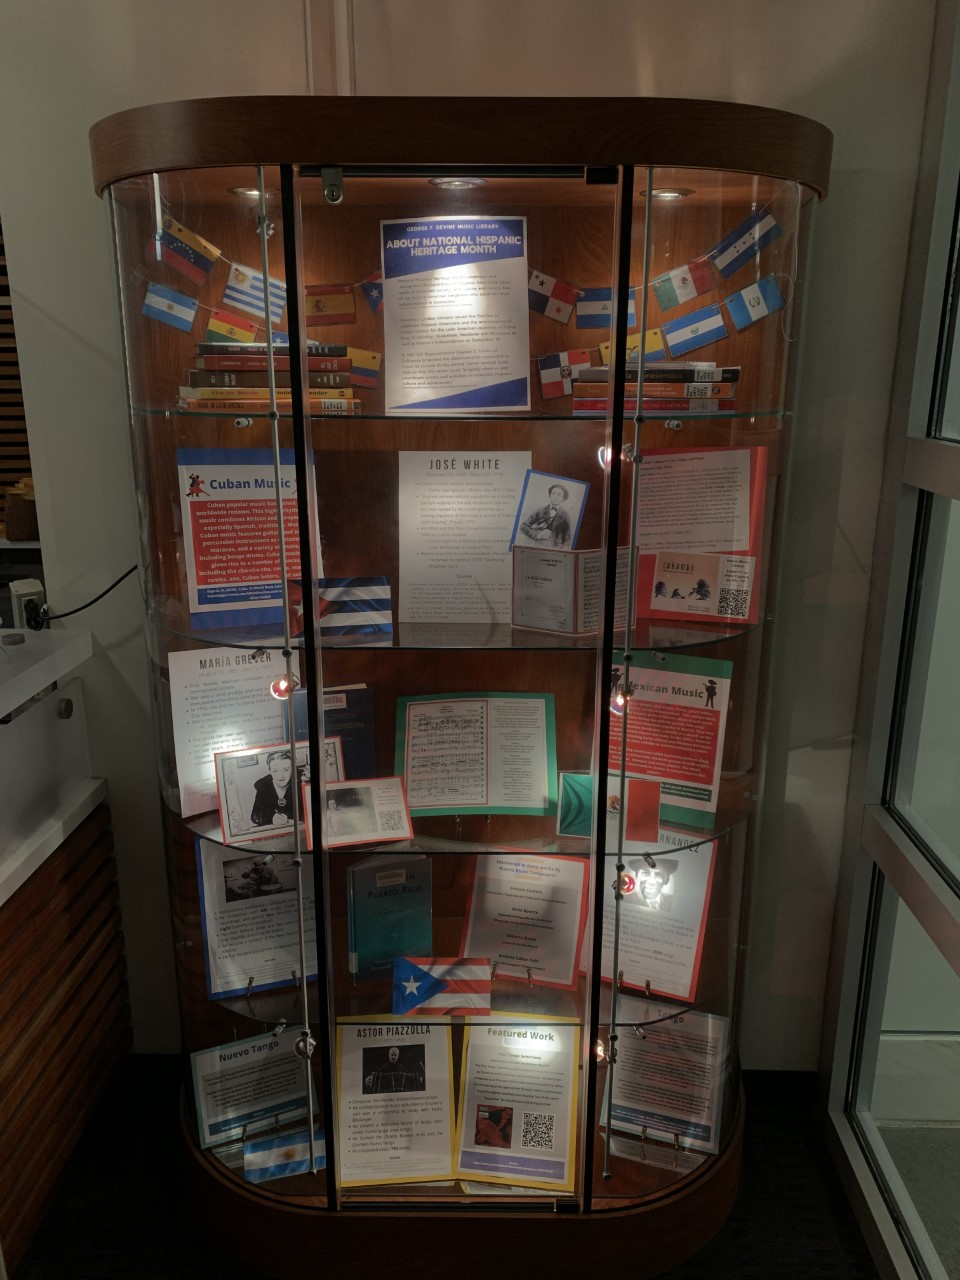 DeVine Display Case featuring Hispanic heritage month materials